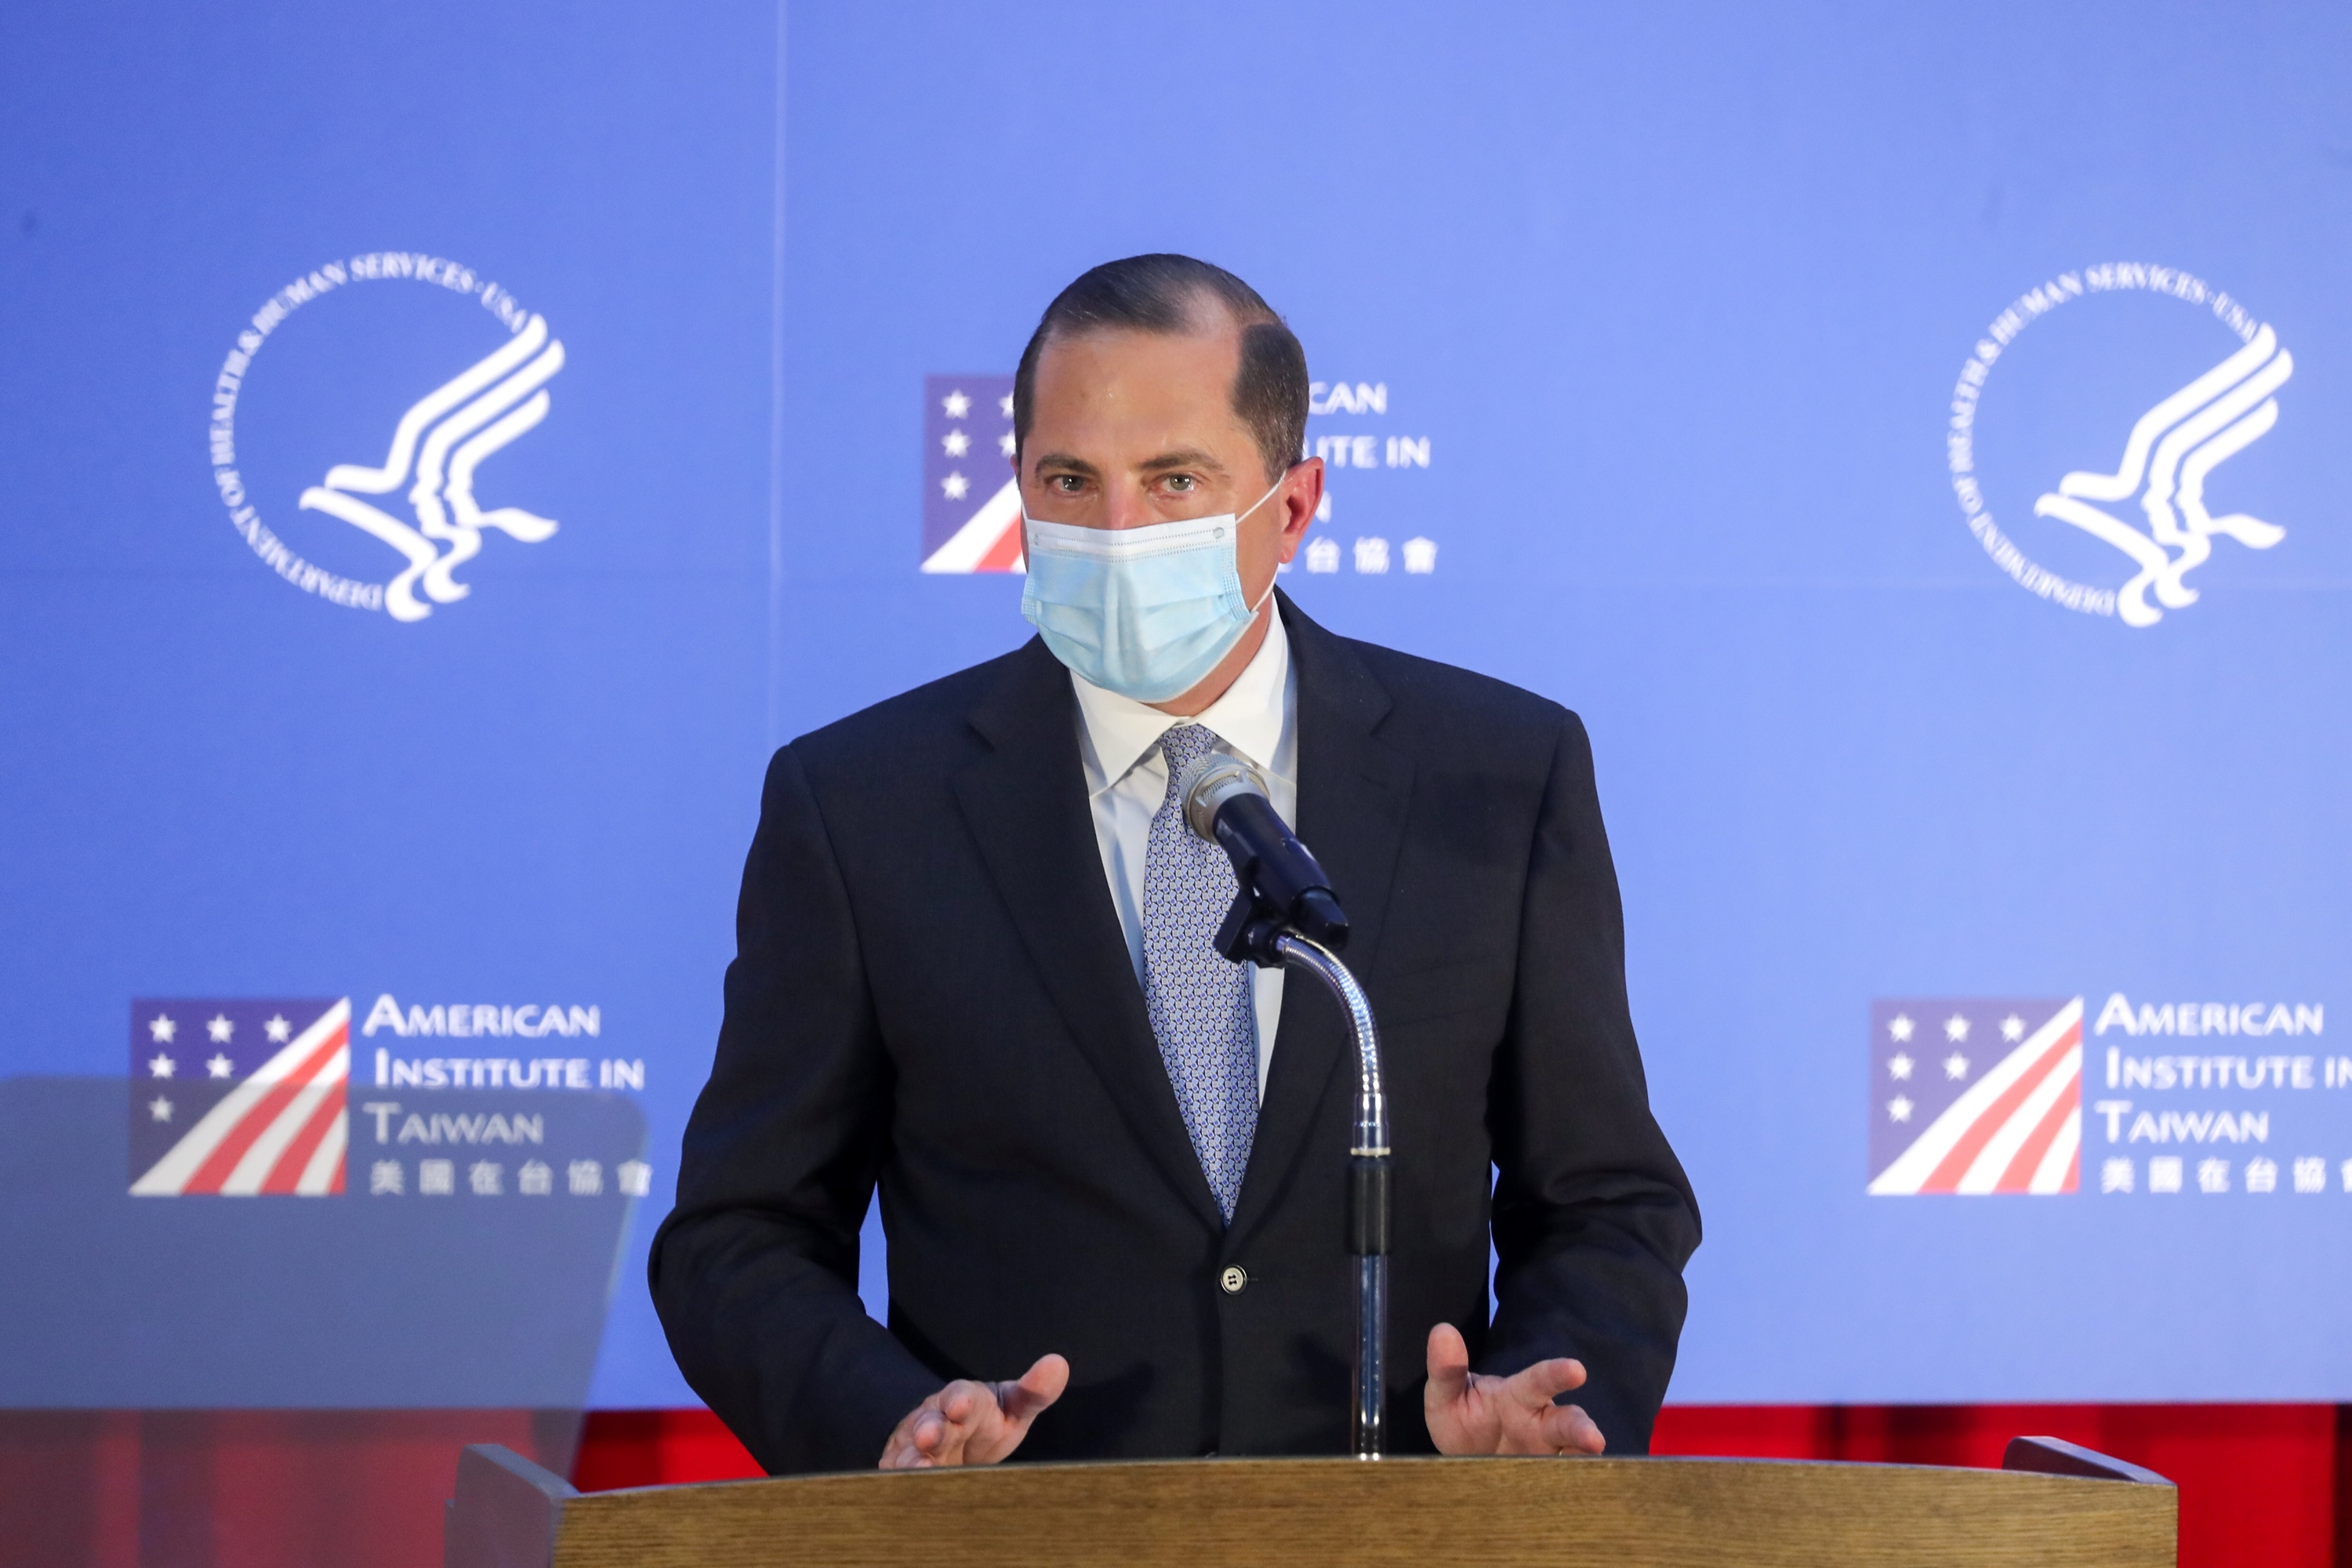 US Secretary of Health and Human Services Alex Azar (R) makes a speech at the public health college of the National Taiwan University (NTU) in Taipei on August 11, 2020. (Photo by PEI CHEN/POOL/AFP via Getty Images)